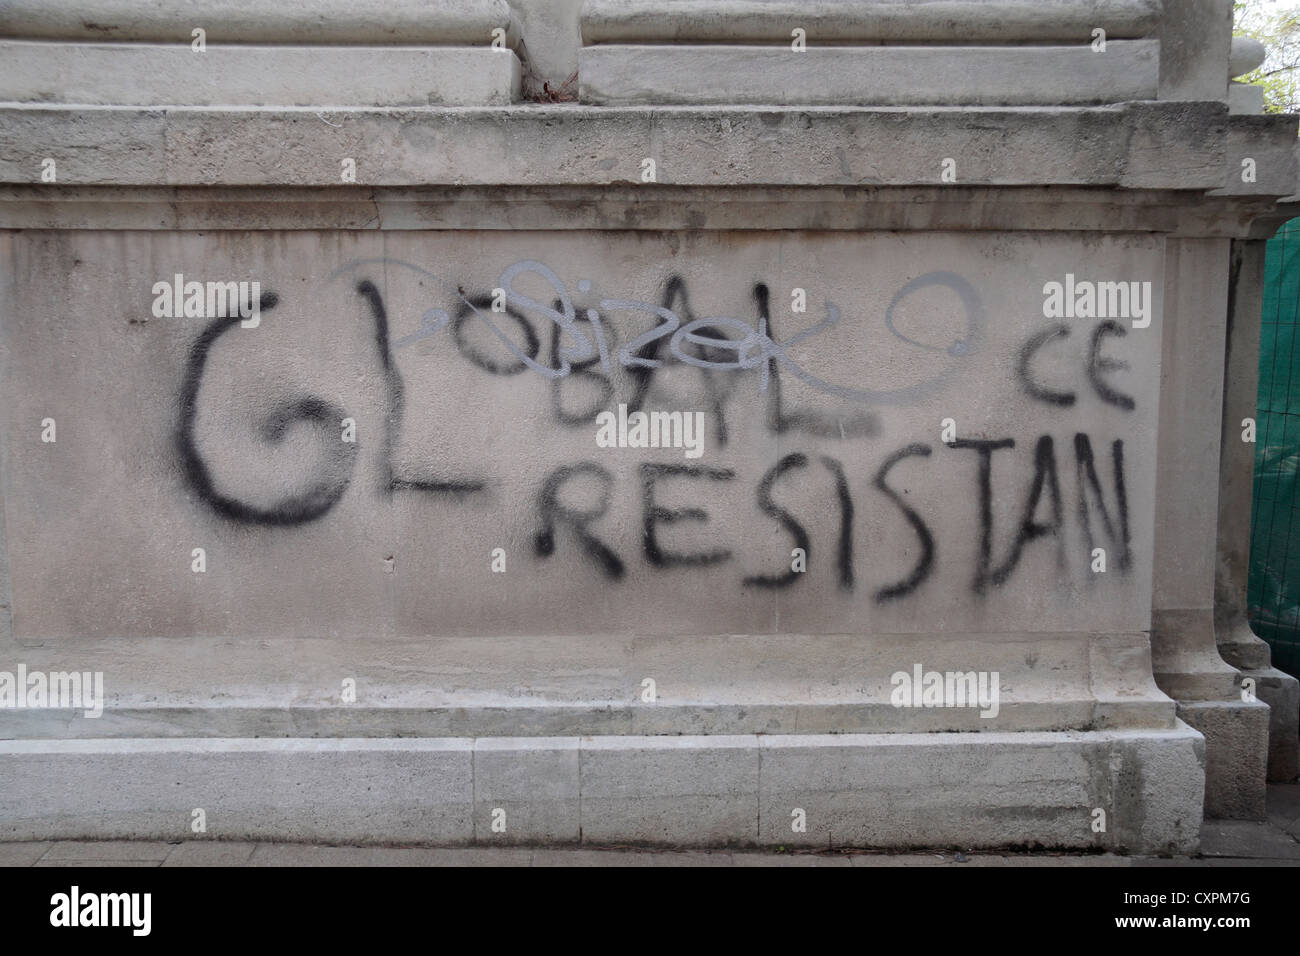 Amusing graffiti mistake (ran out of room for the word 'resistance') on a wall in Vienna (Wien), Austria. - Stock Image